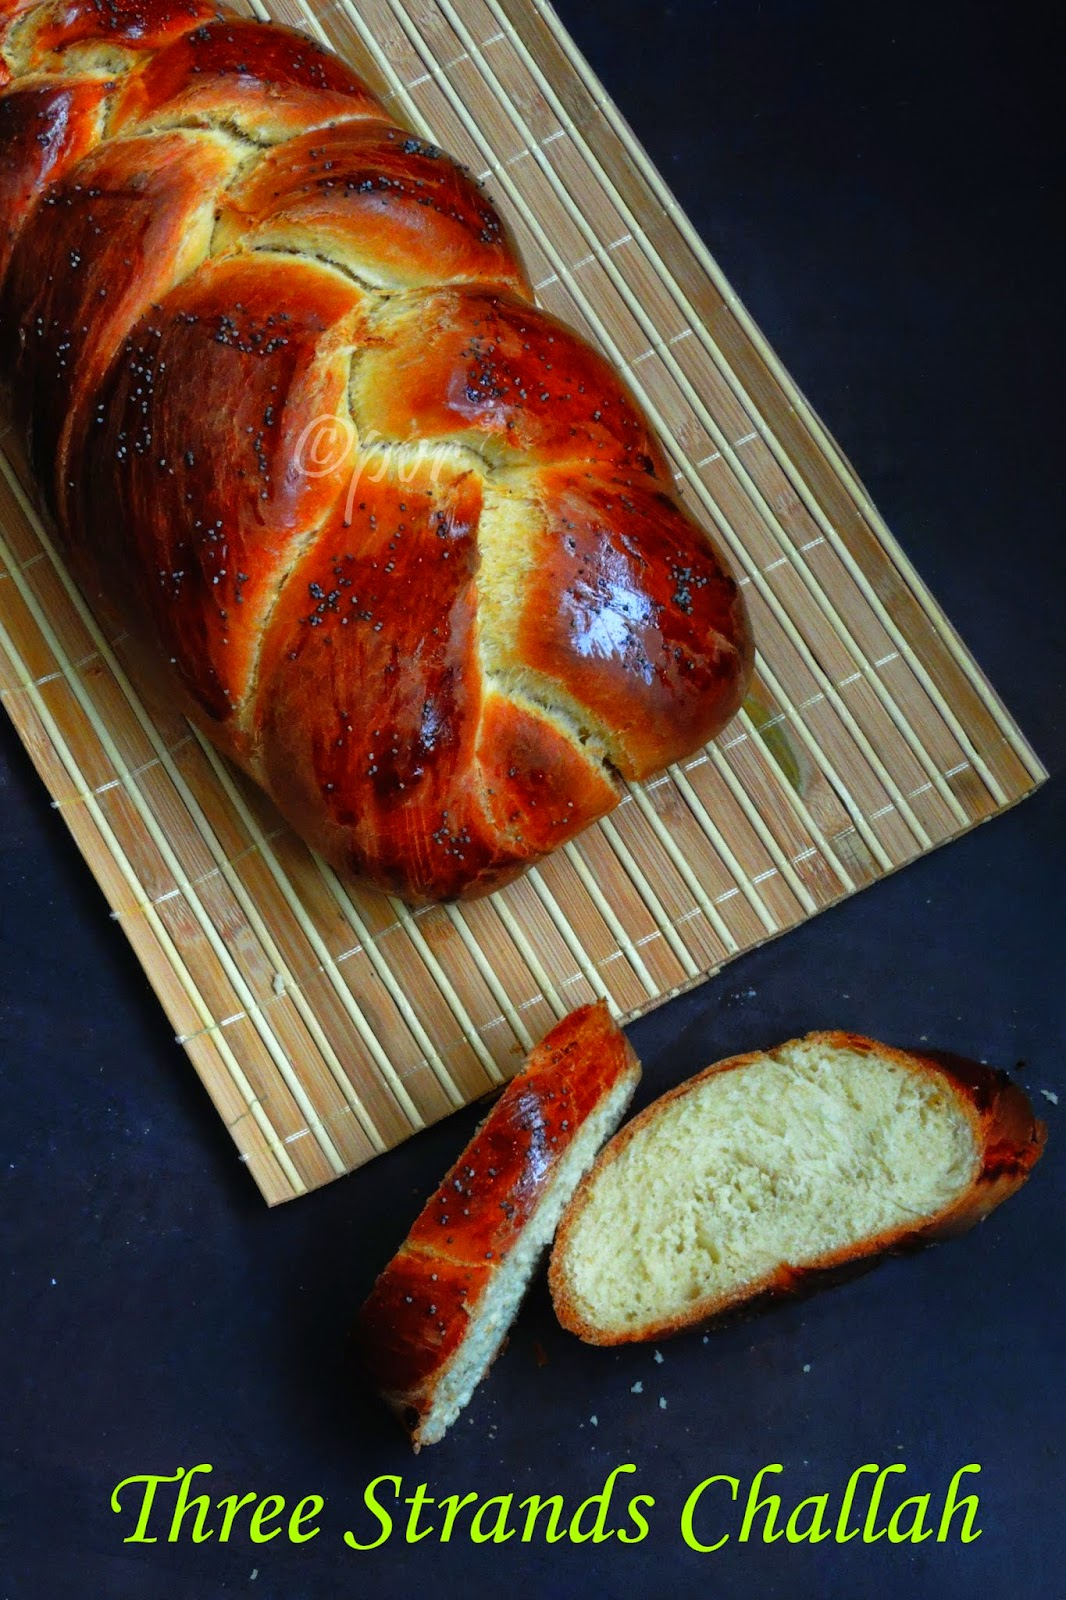 3 strands braided challah bread